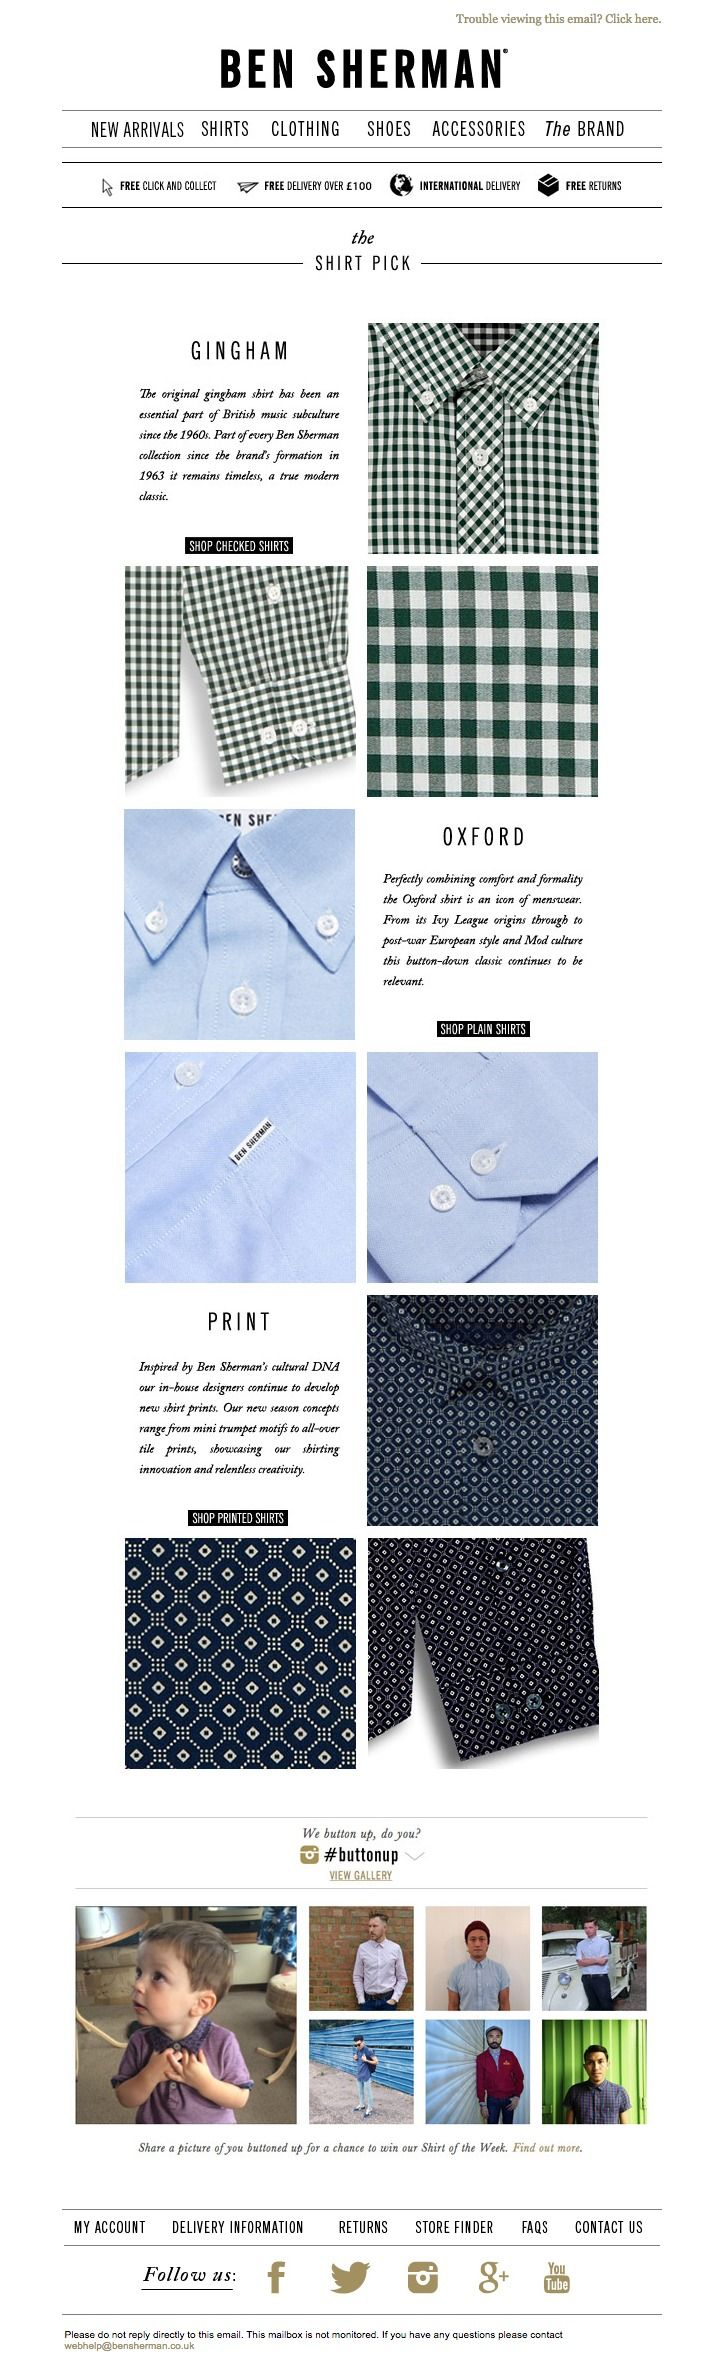 #newsletter Ben Sherman 10.2014 Button Up with our shirt picks